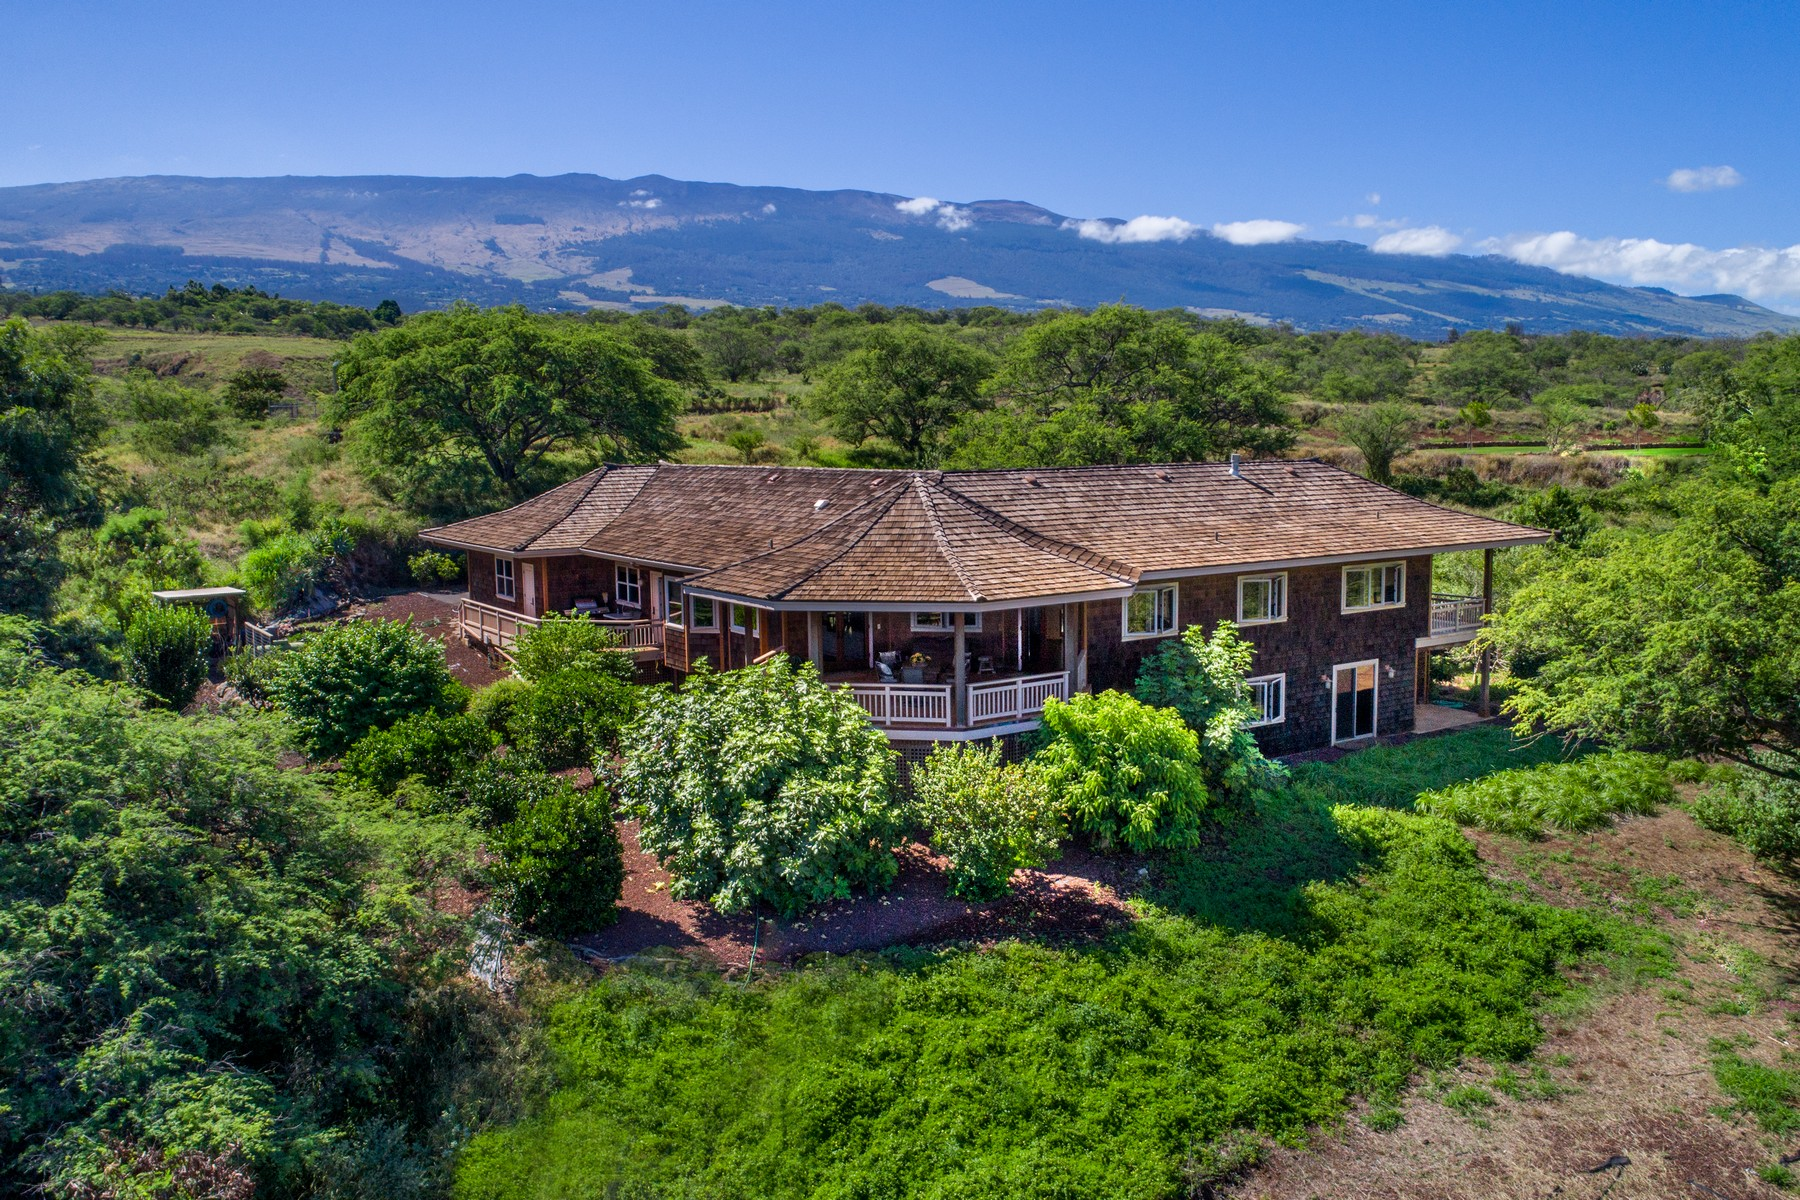 Maison unifamiliale pour l Vente à Maui Upcountry Classic Plantation Home On 6 Acres 101 Ikena Kai Place Kula, Hawaii 96790 États-Unis